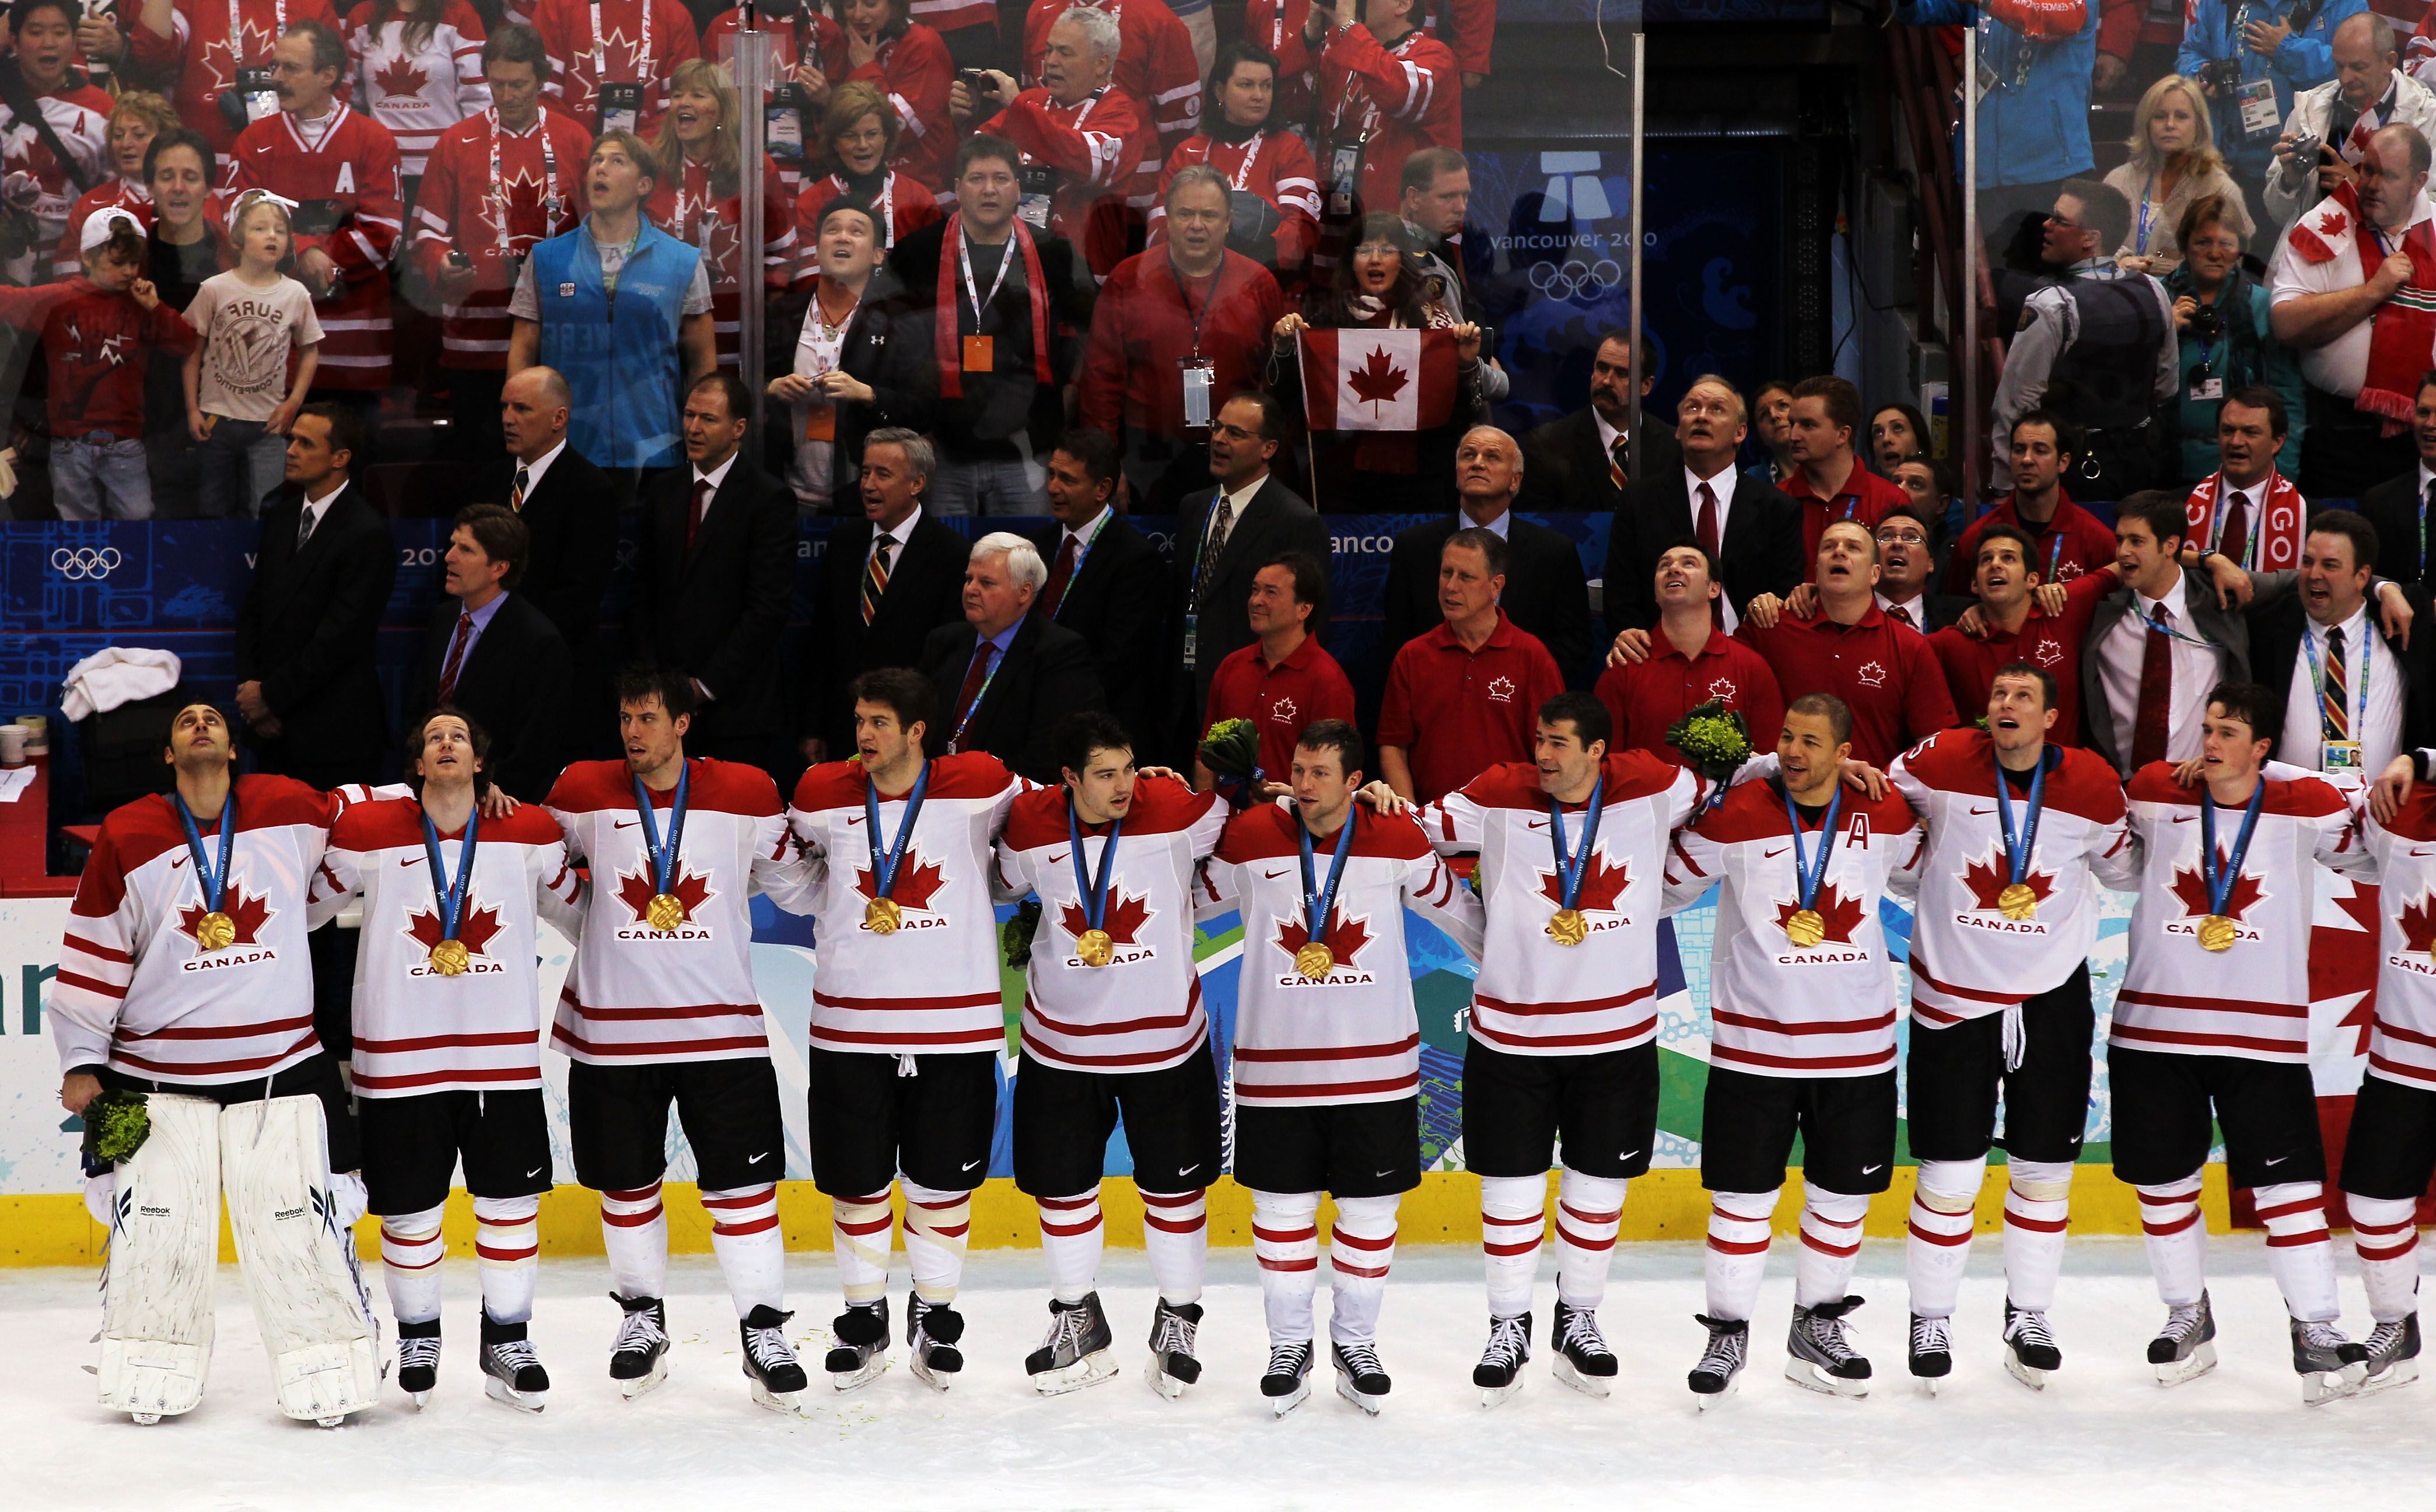 Olympic Ice Hockey Medal Winners All Time Results